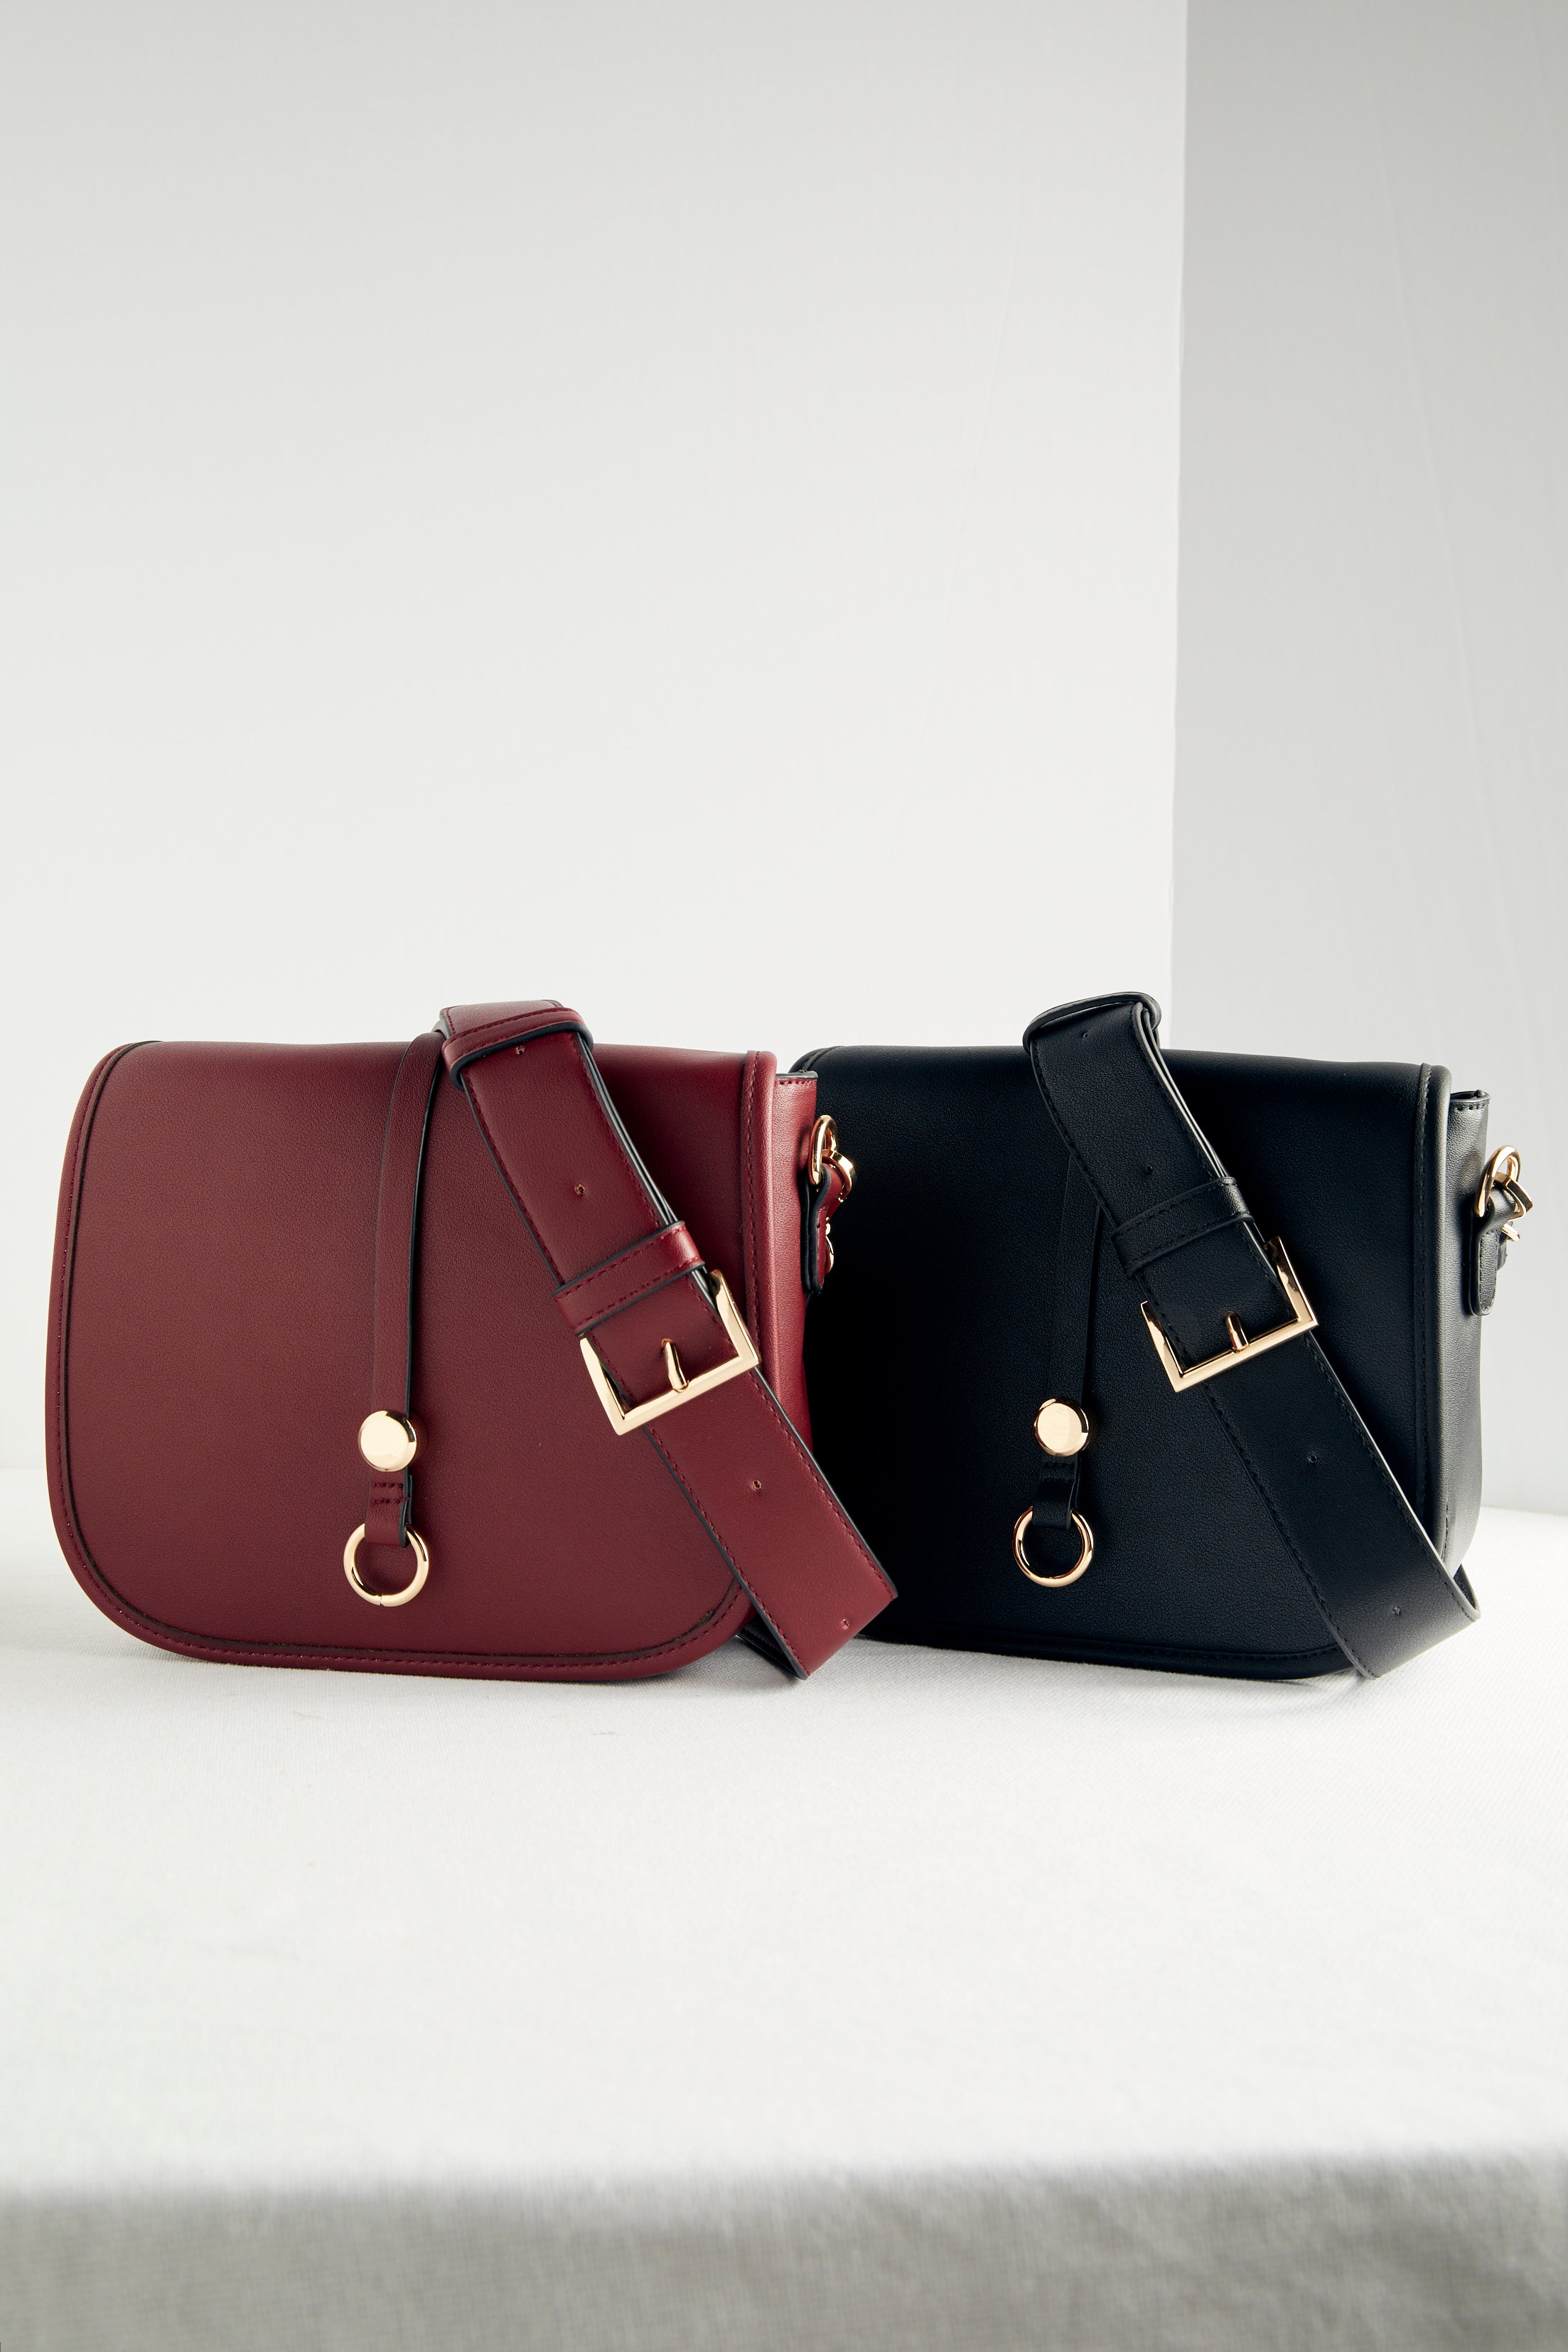 Whitney Cross Body Bag - P I C N I C